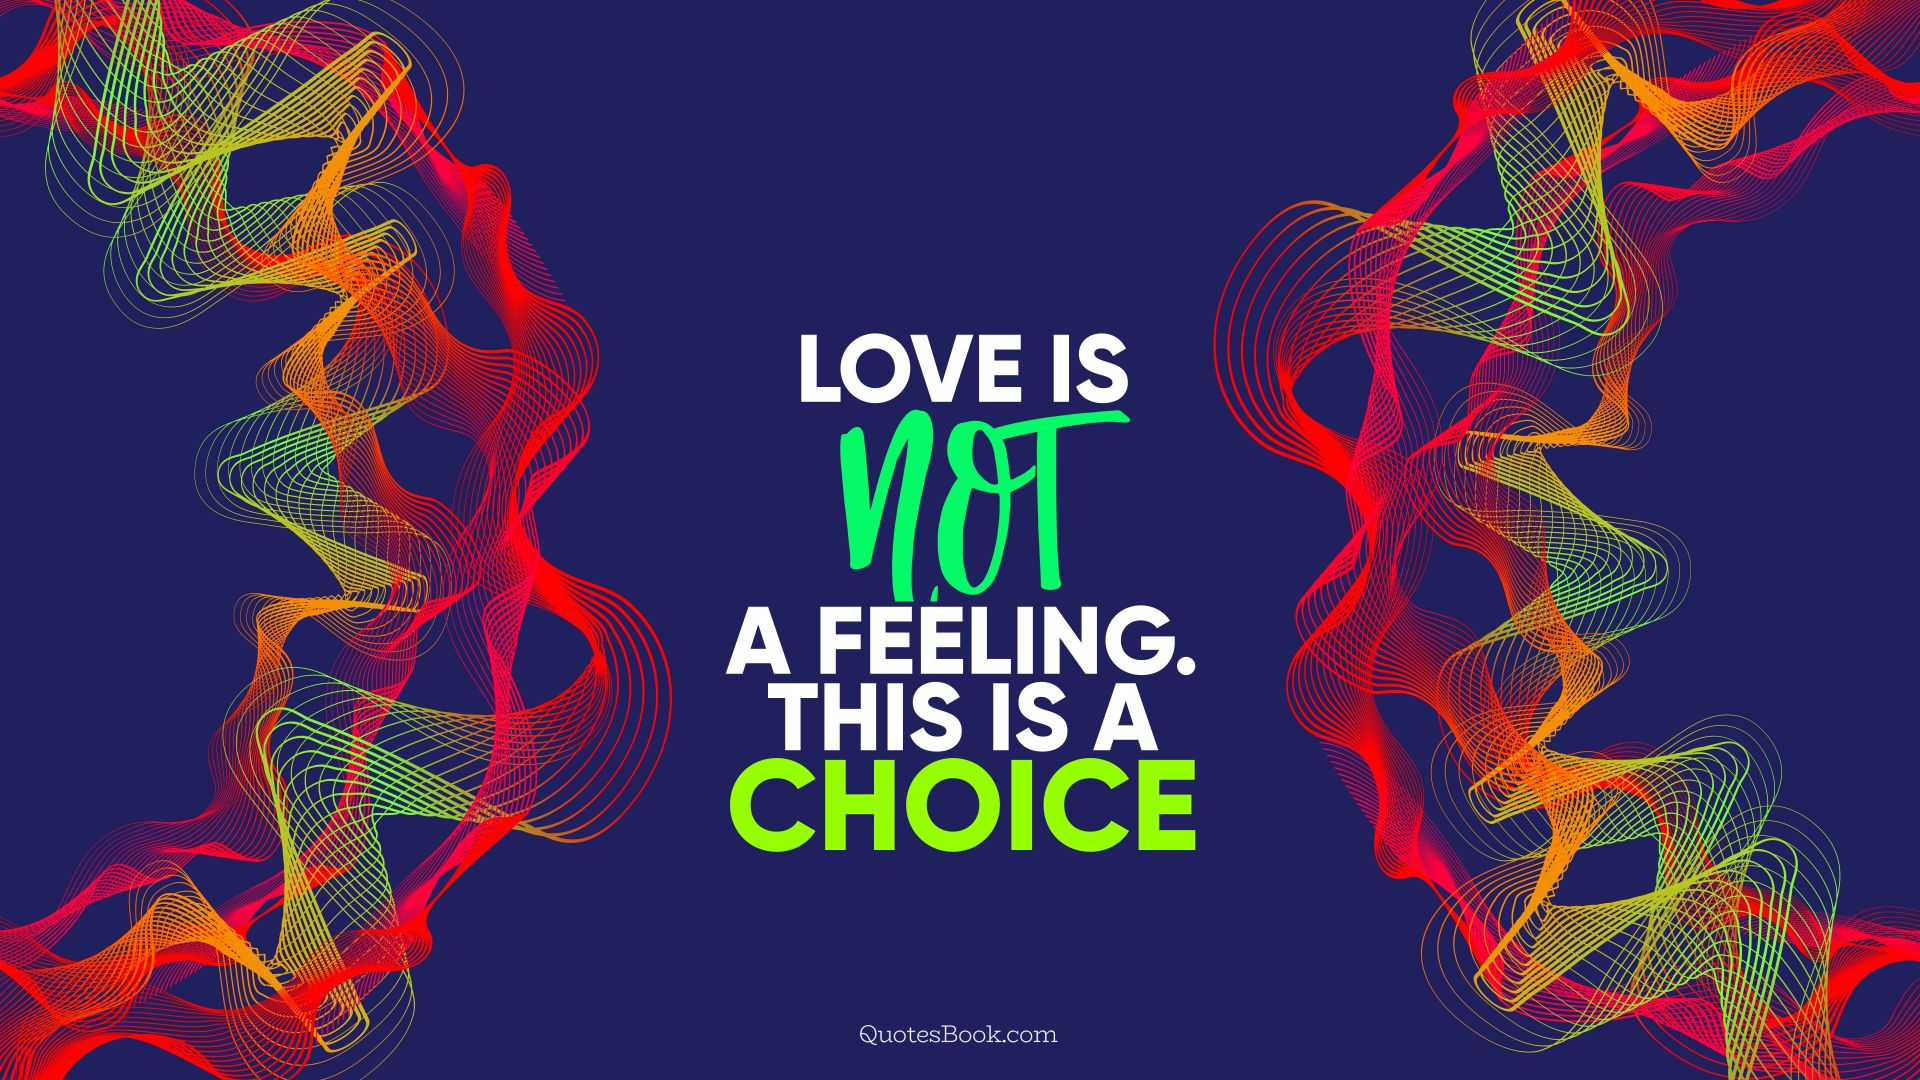 Love is not a feeling. This is a choice. - Quote by QuotesBook